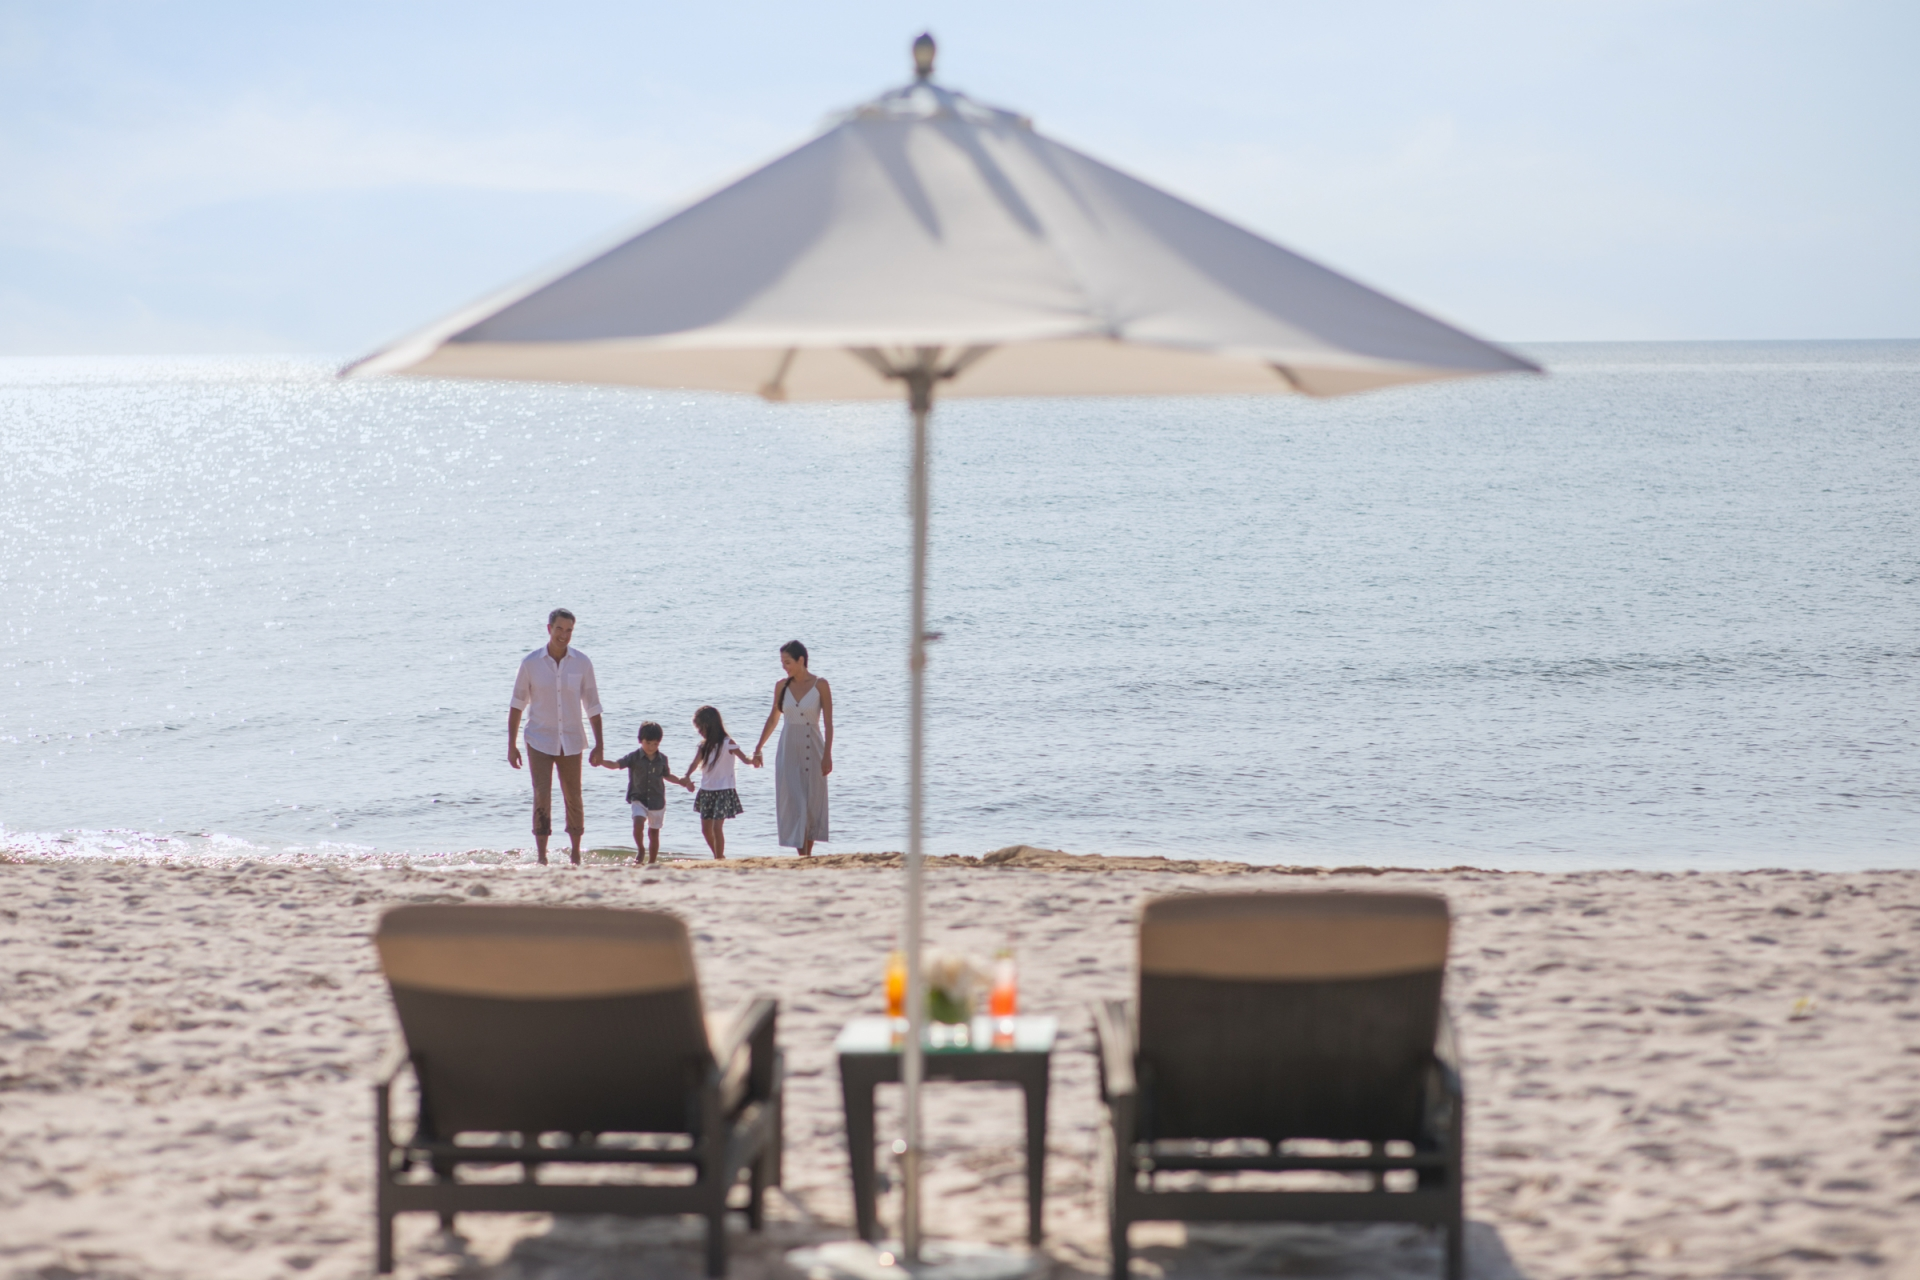 dine play and stay on the pearl island phu quoc